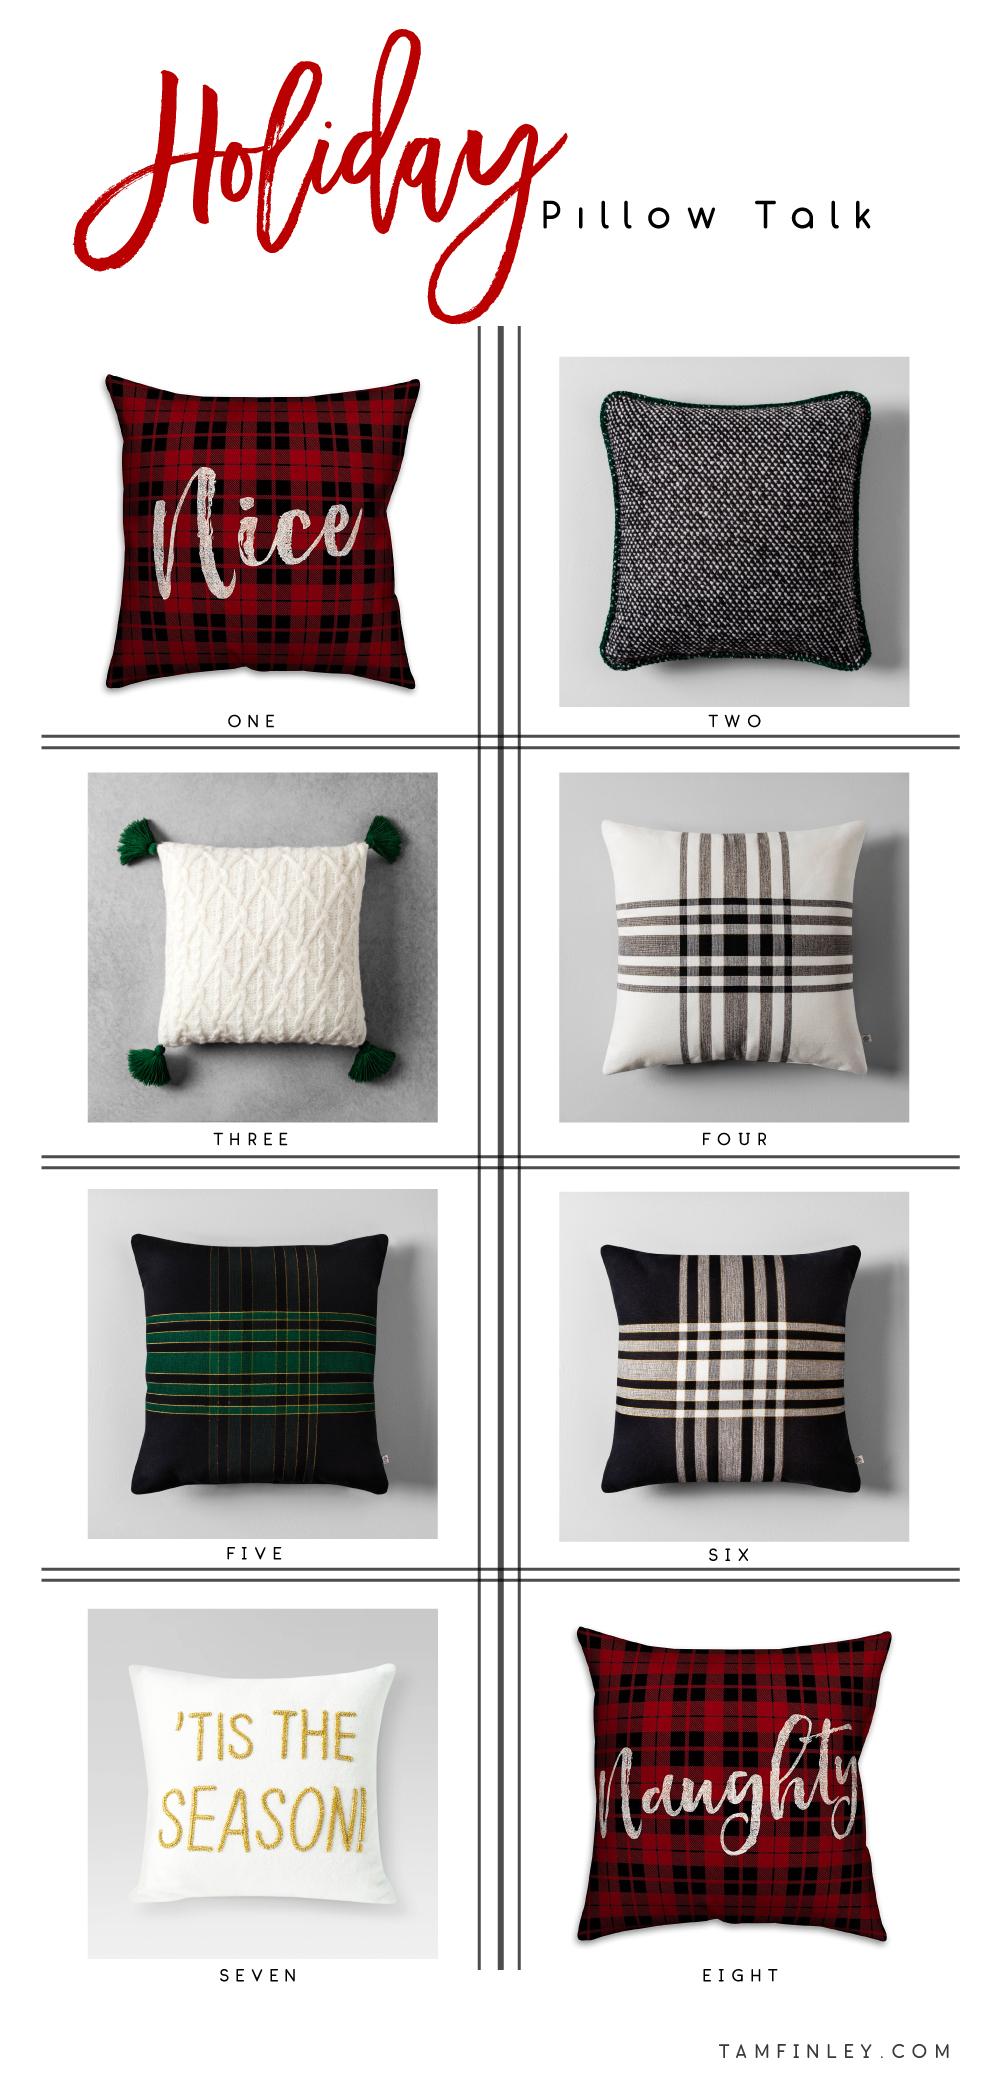 12daysholidaypillows.jpg